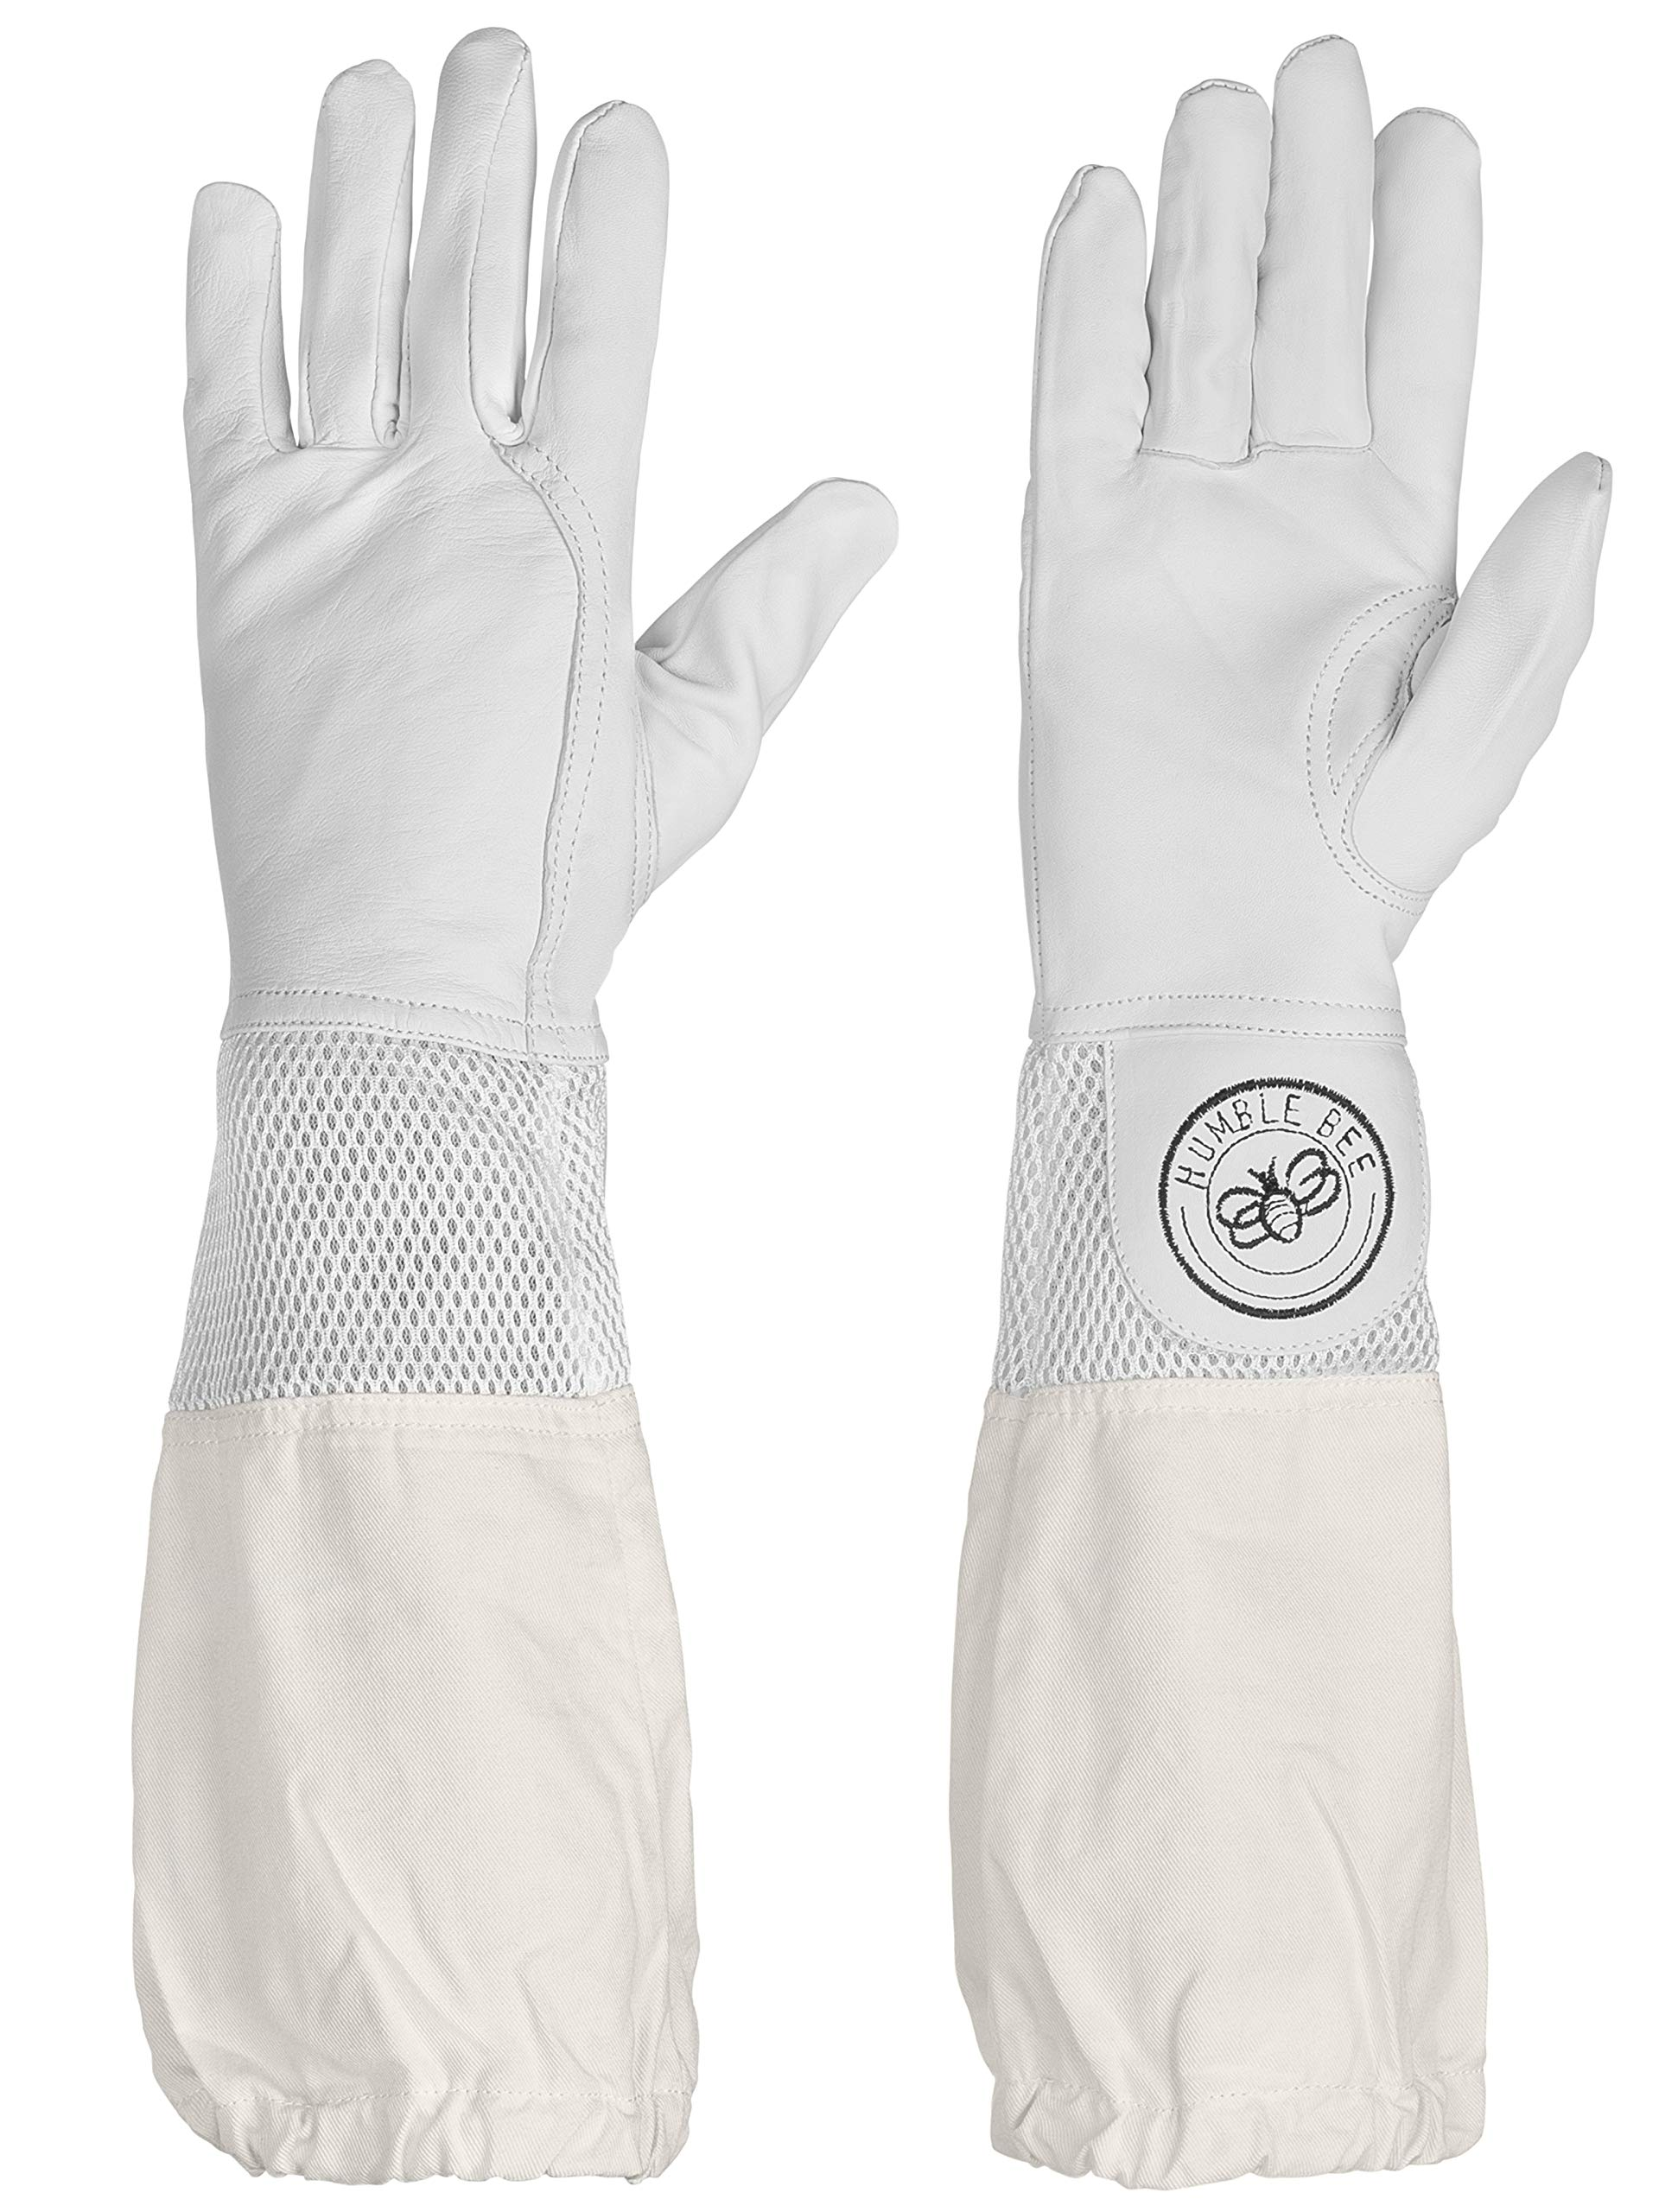 Humble Bee 112-L Beekeeping Gloves with Ventilated Cuffs (Large)